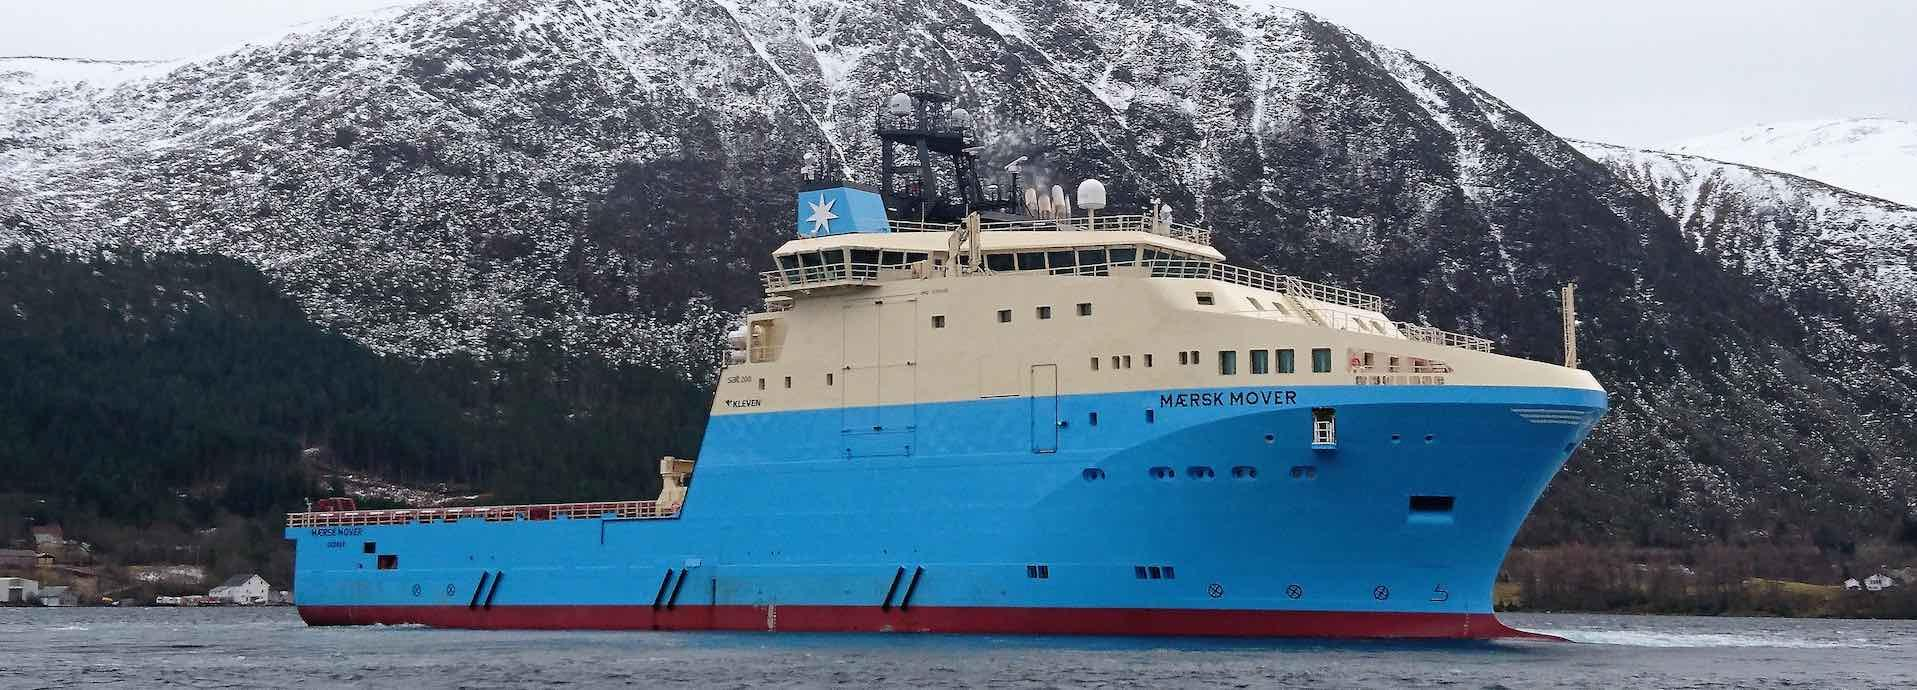 Maersk Mover offshore supply vessel